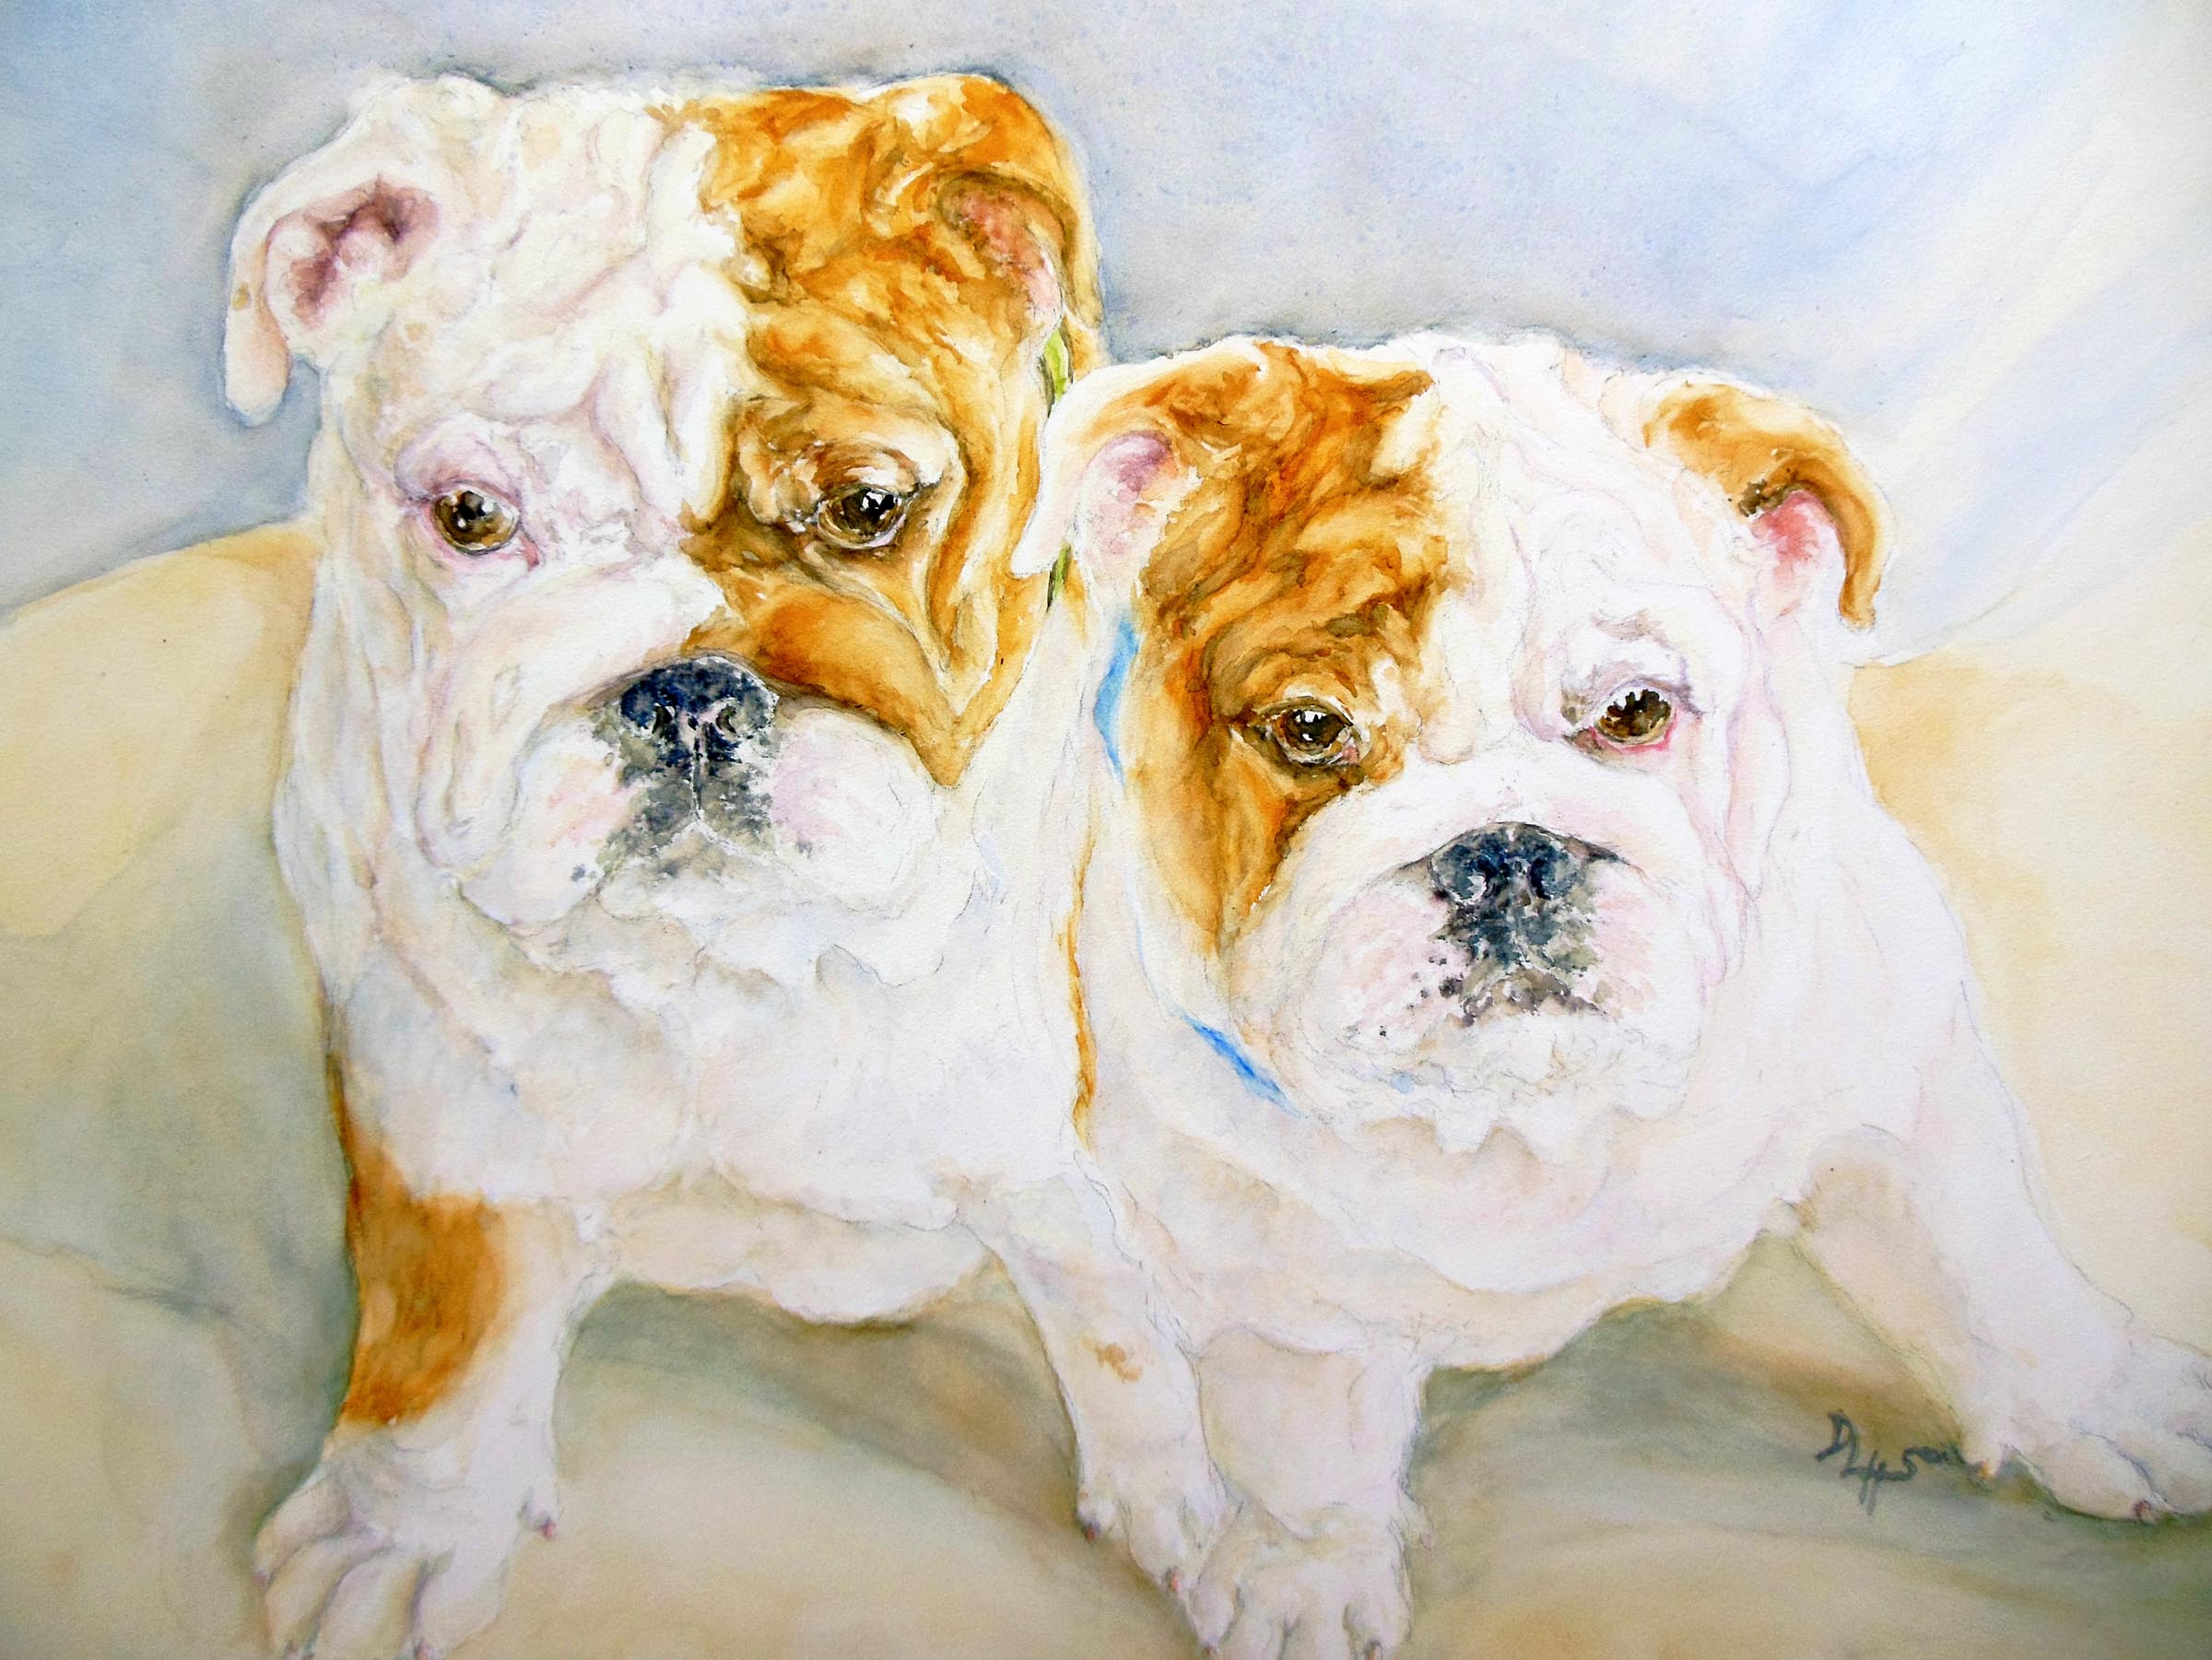 Rapsody in Wrinkles pair of English Bulldog puppies